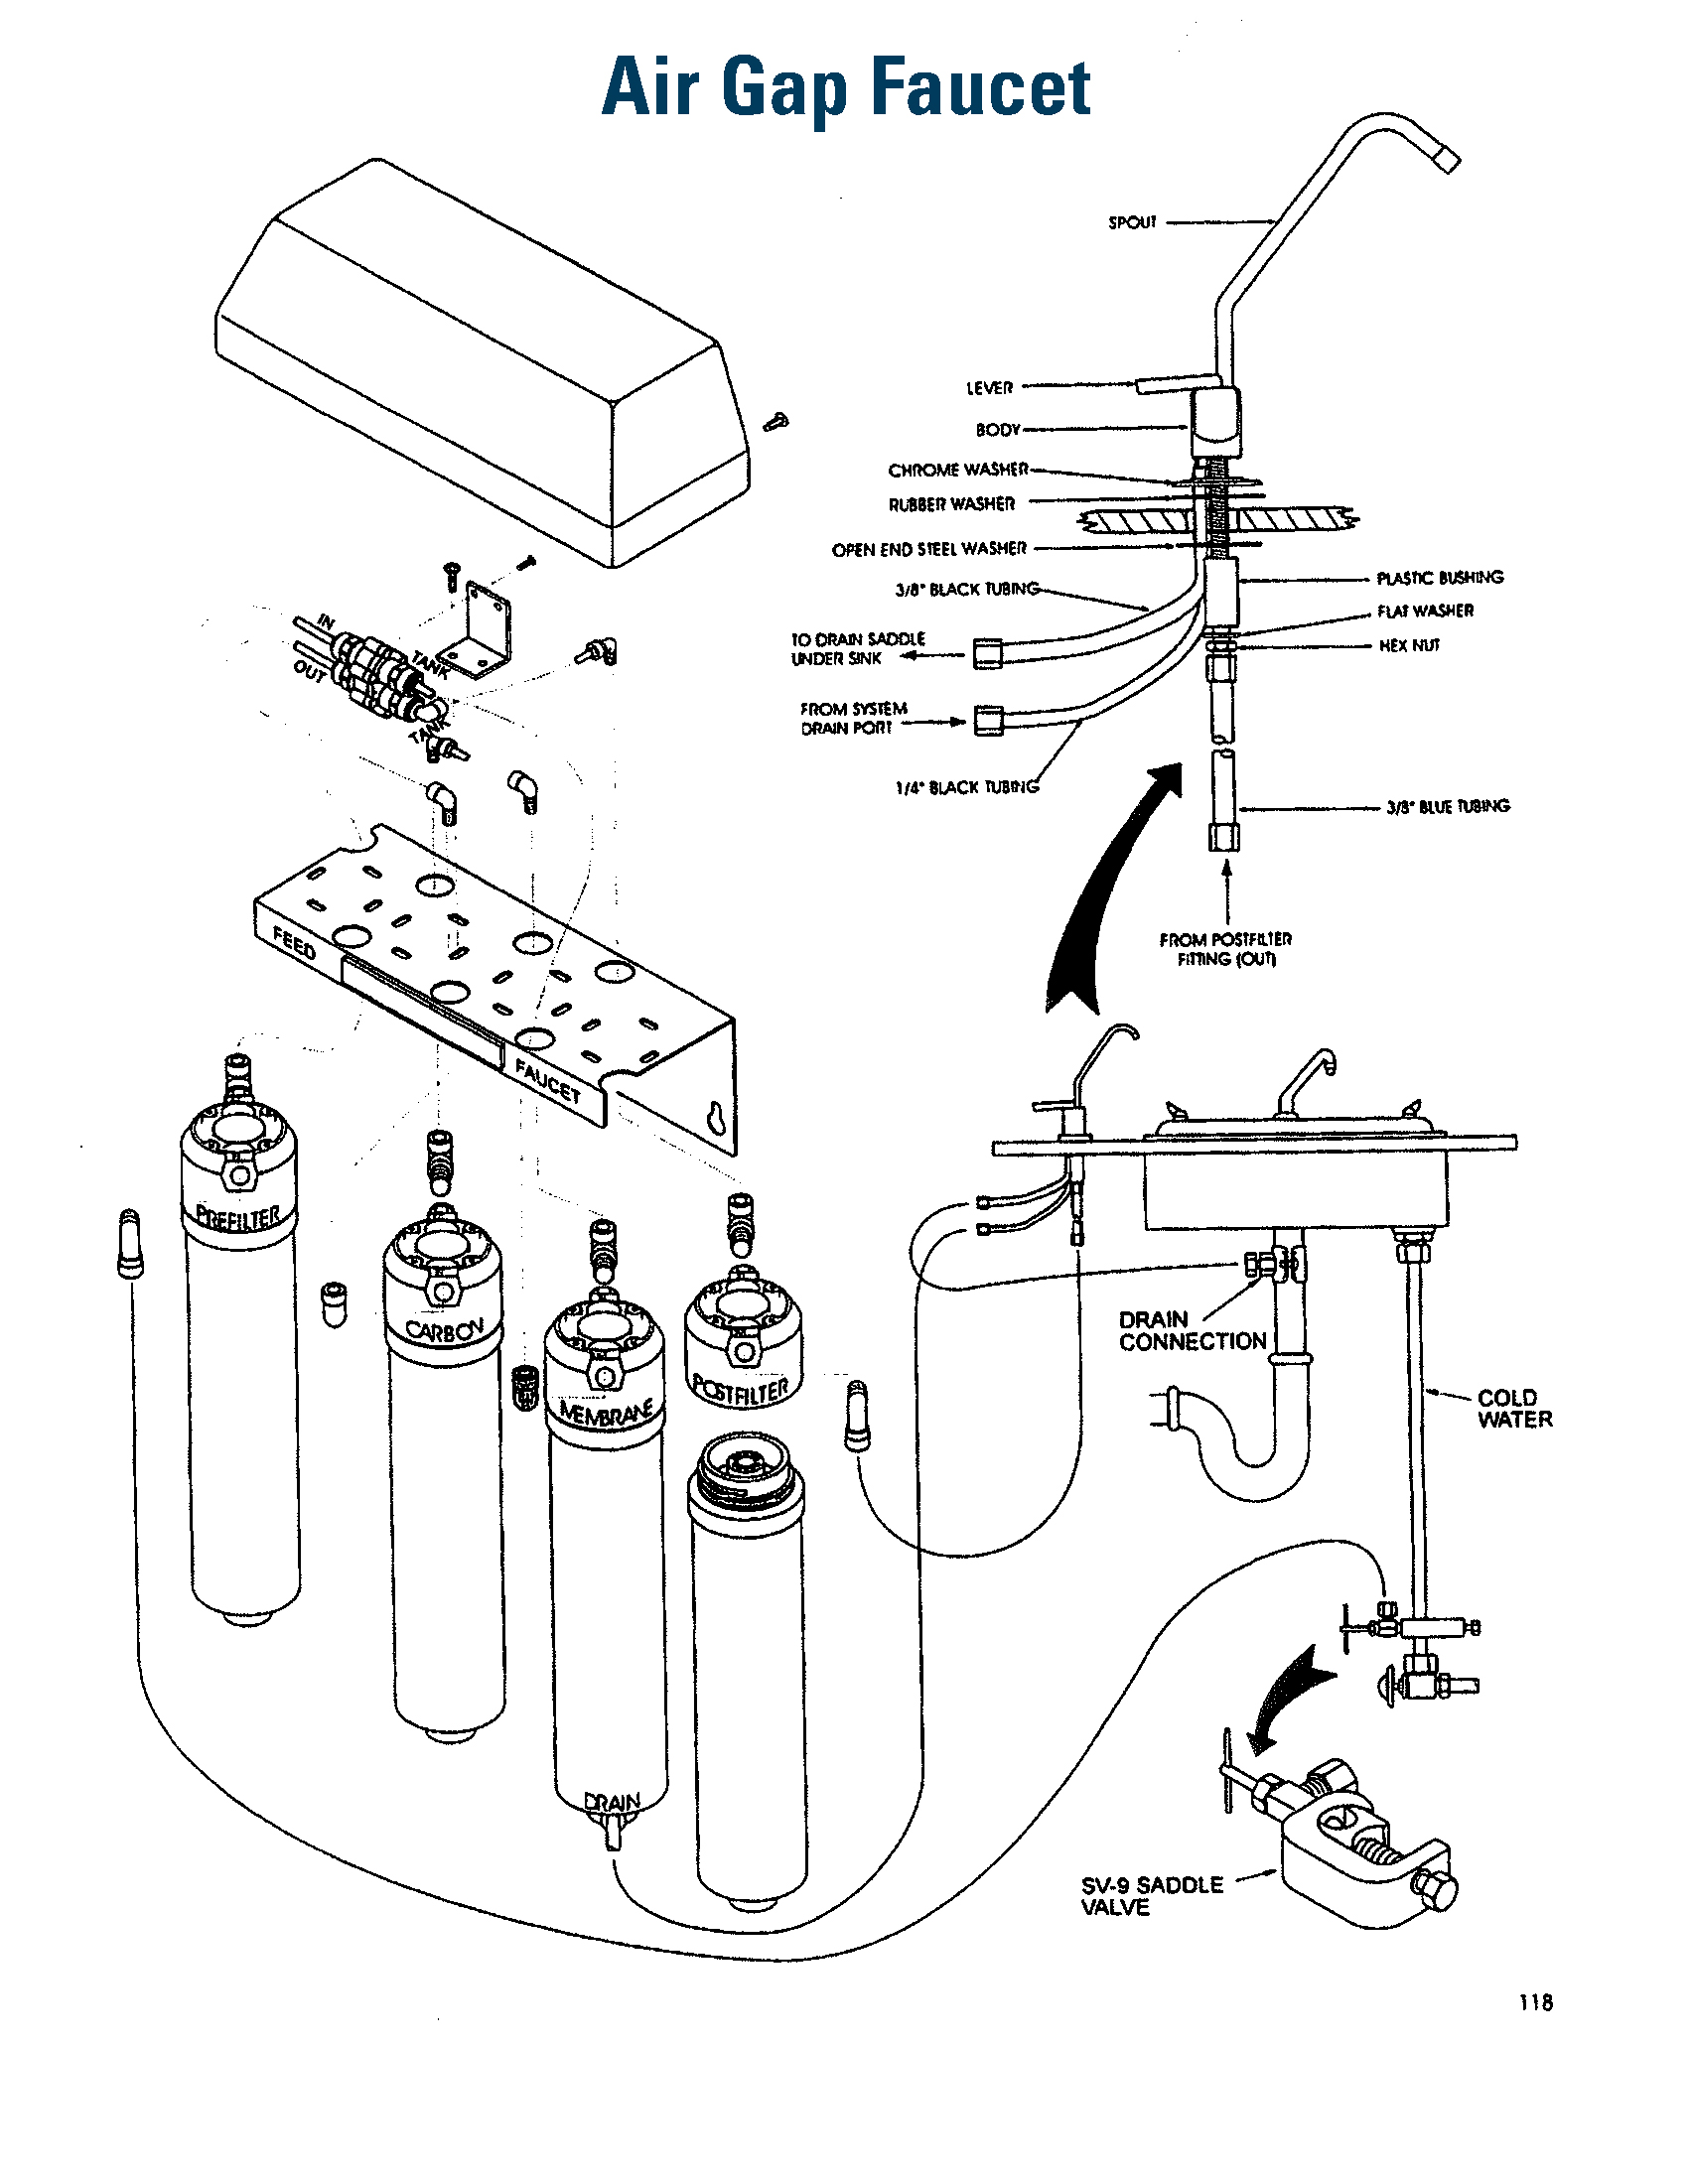 marvelous Kitchen Faucet Air Gap #6: Air Gap Faucet Diagram